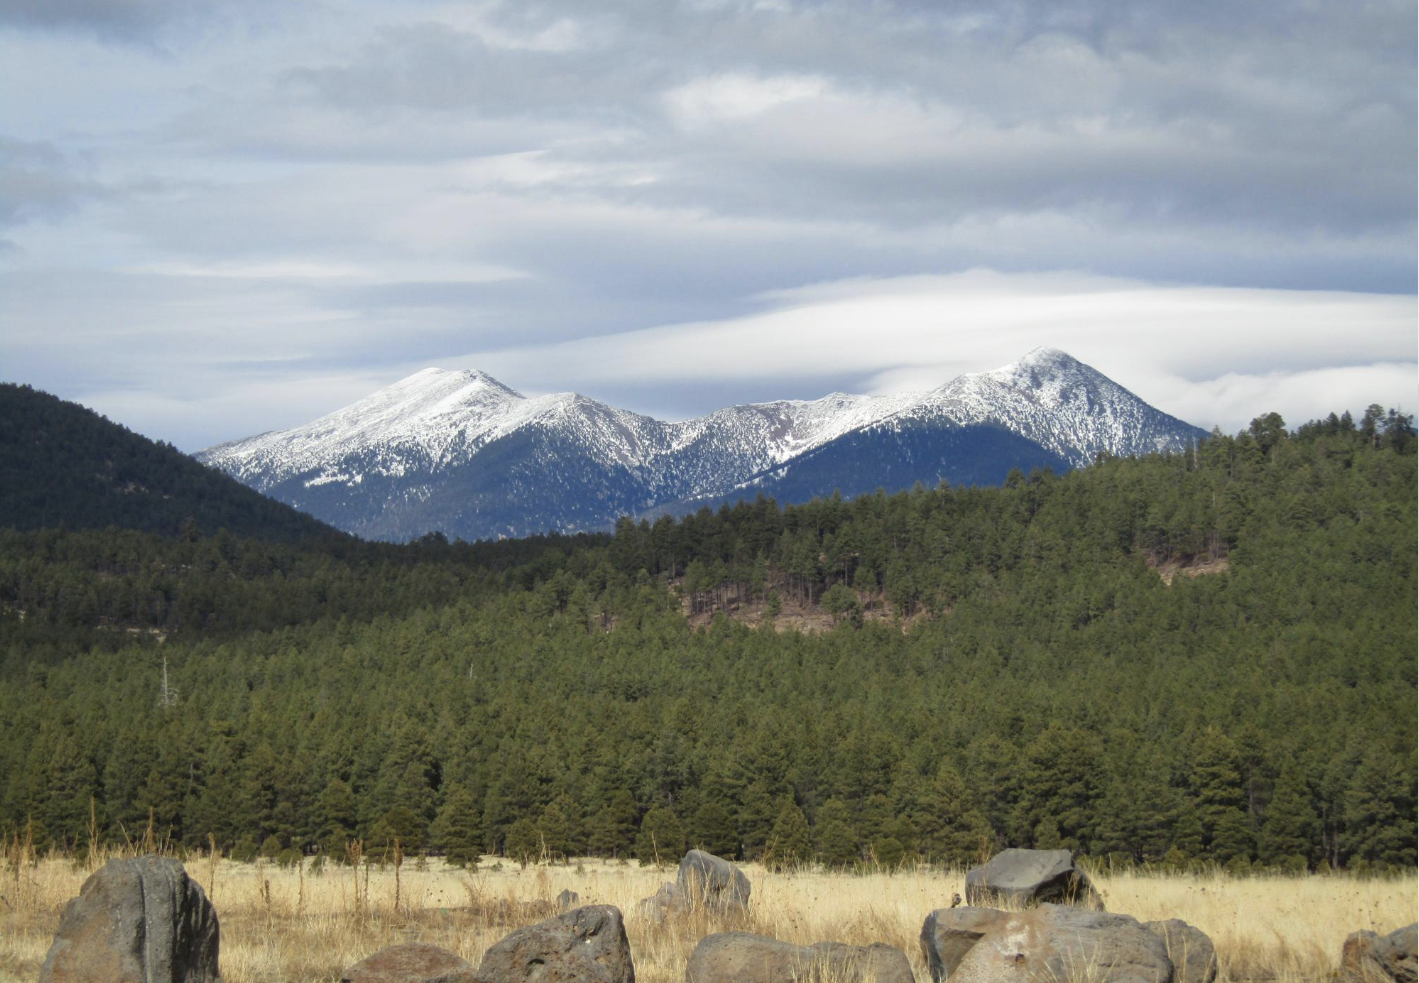 A View of the San Francisco Peaks from Flagstaff Meadows Homes in Flagstaff, AZ